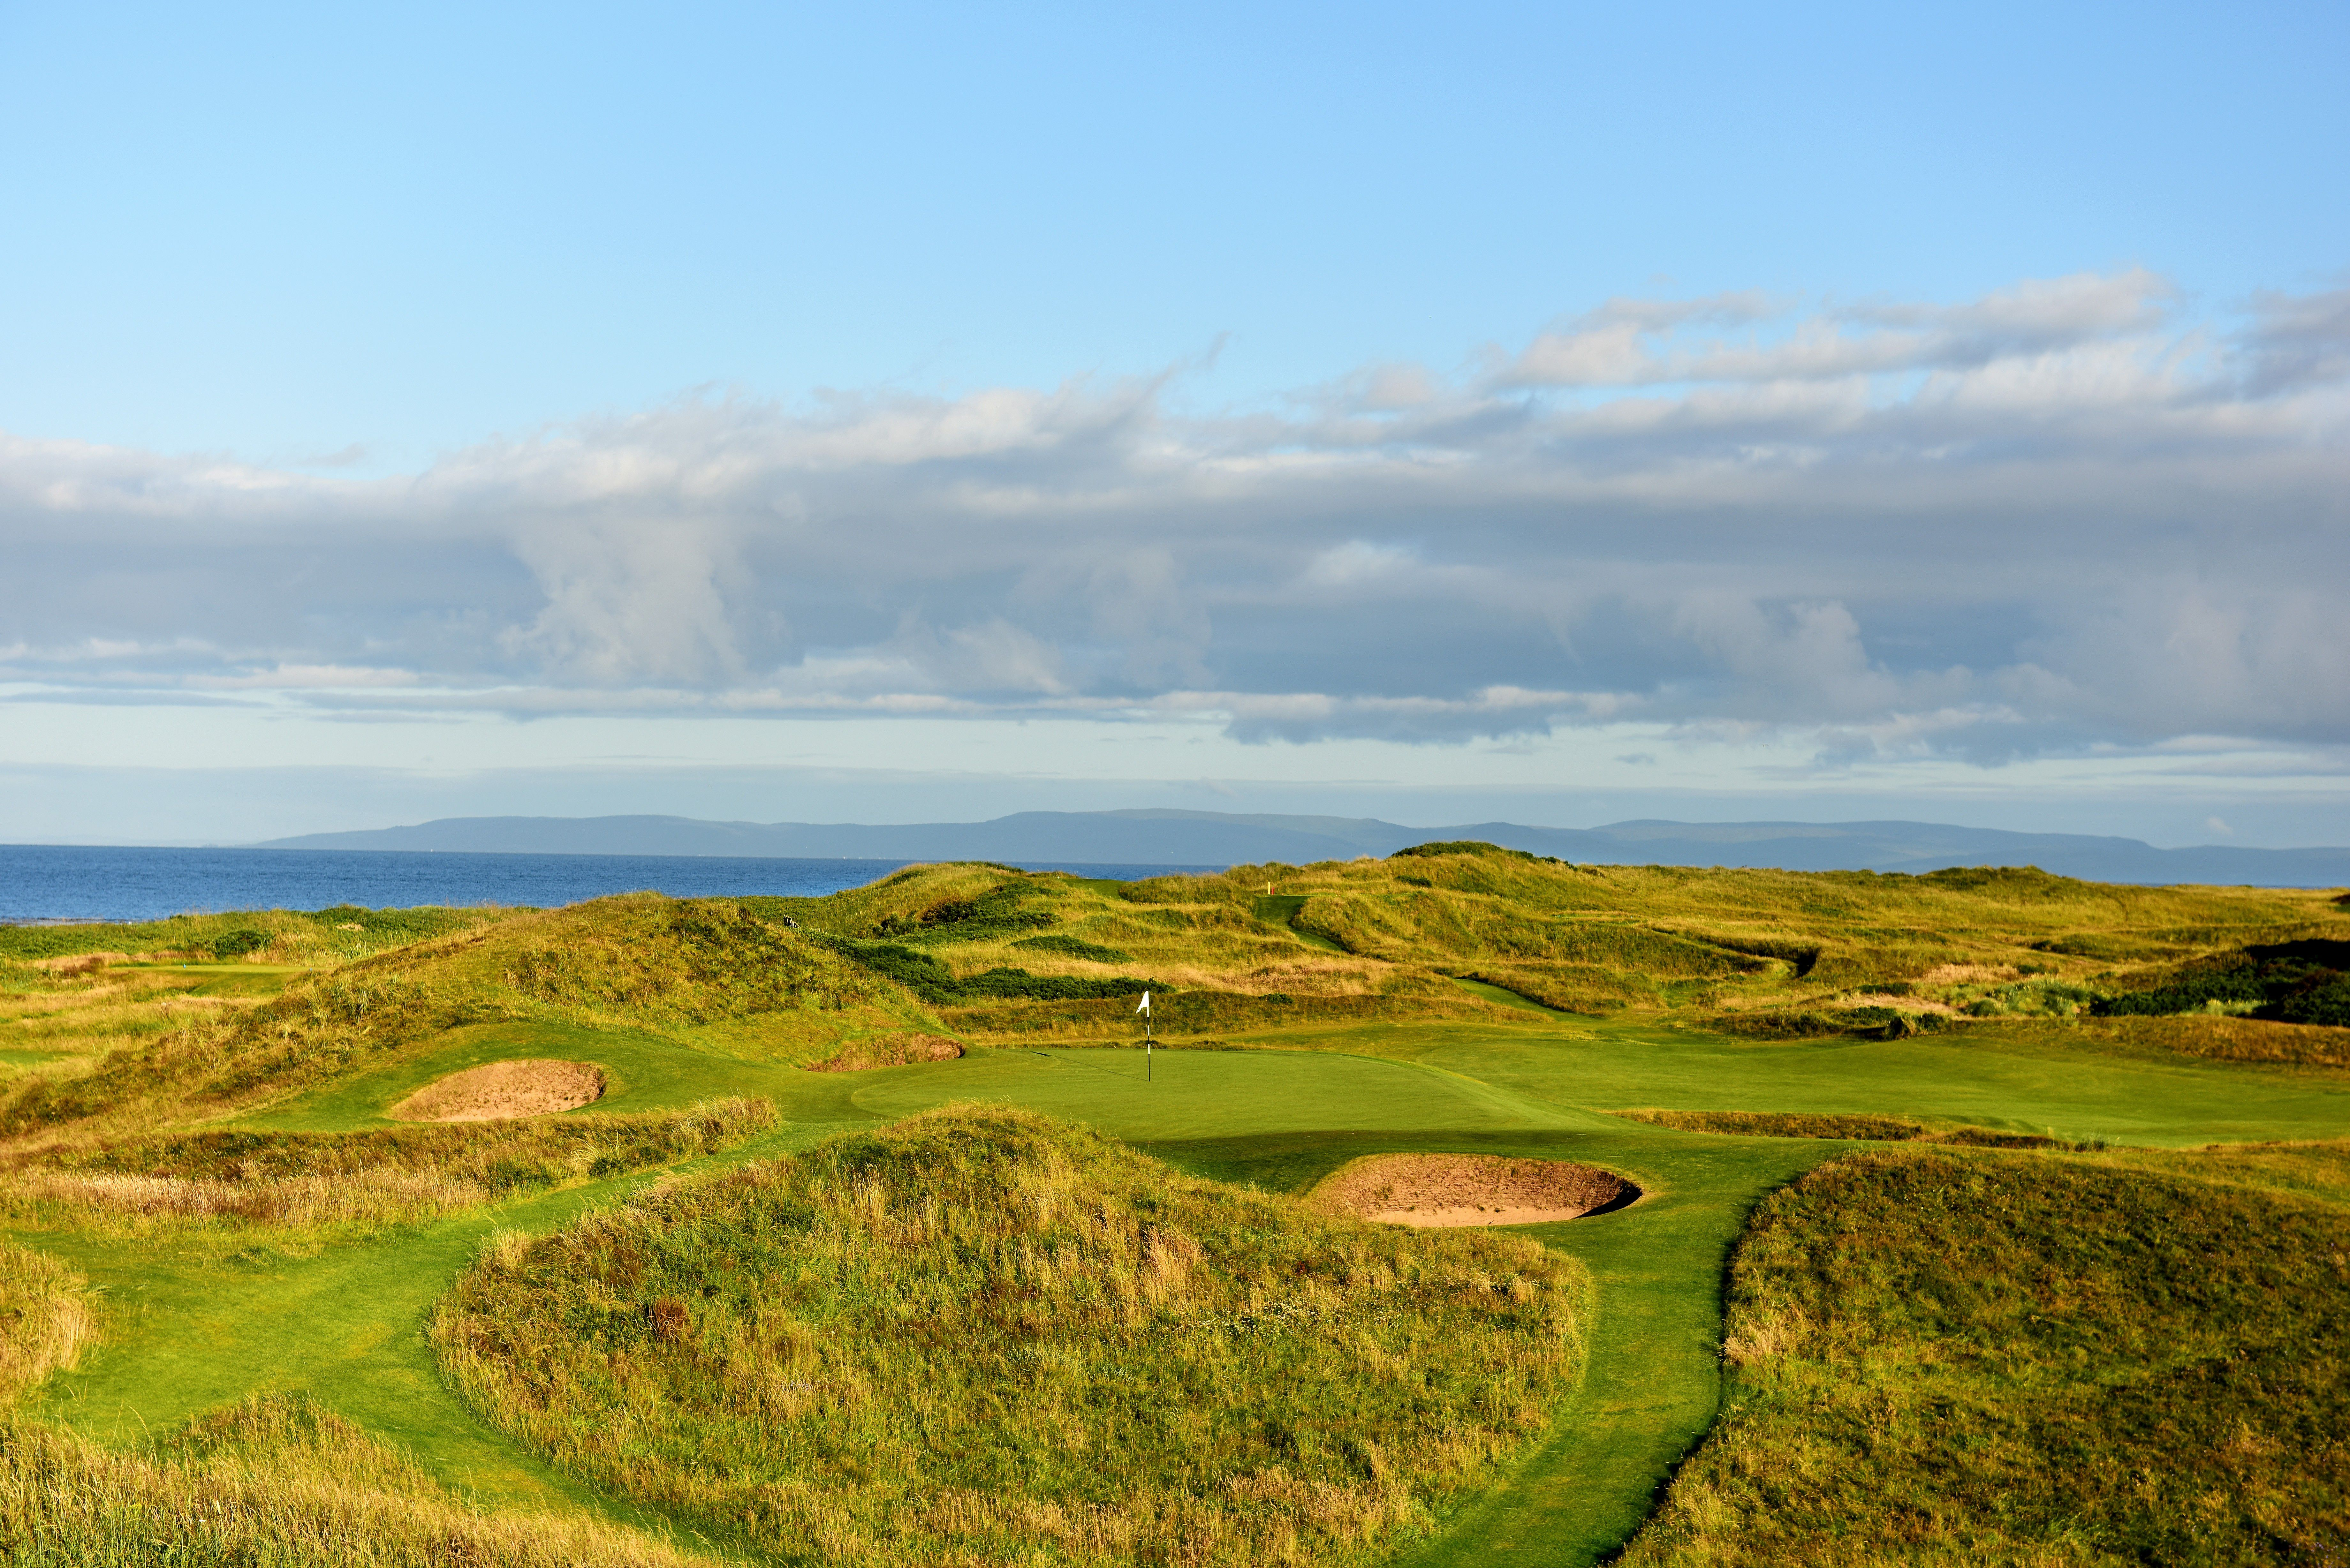 The 123 yards par 3, 8th hole Postage Stamp on the Old Course at Royal Troon